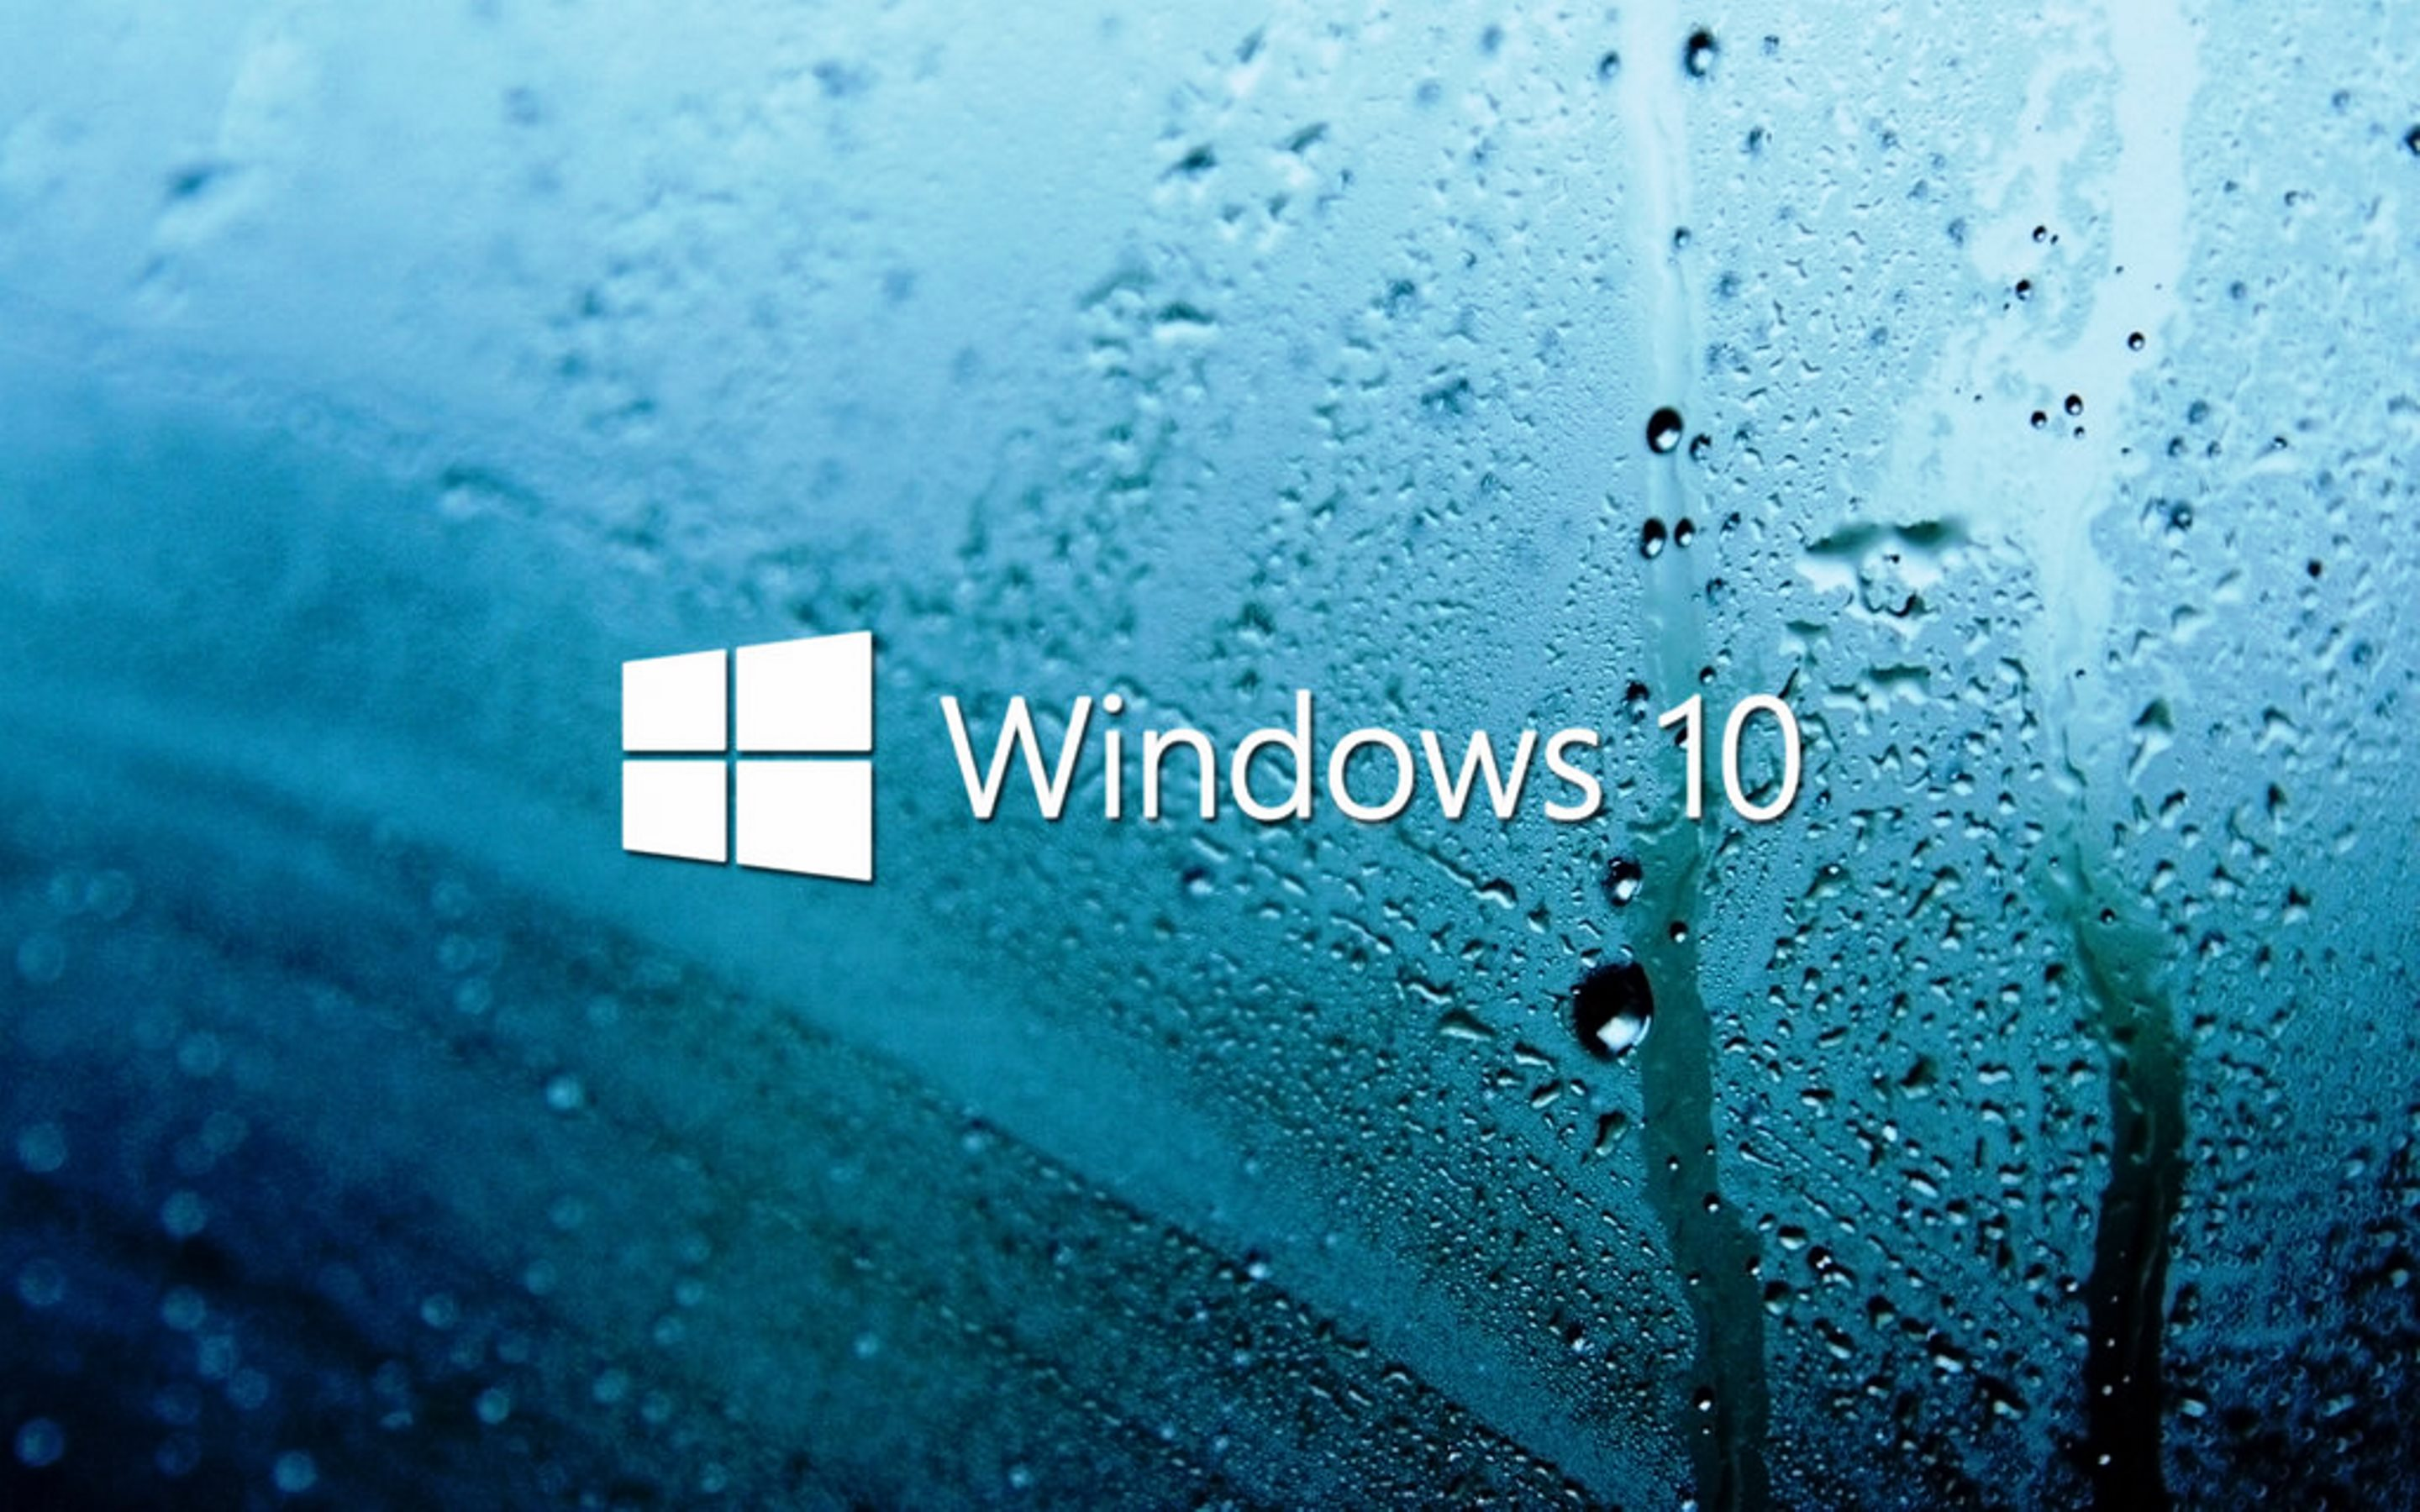 Sfondi windows 10 acqua sfondi hd gratis for Sfondi desktop hd gratis